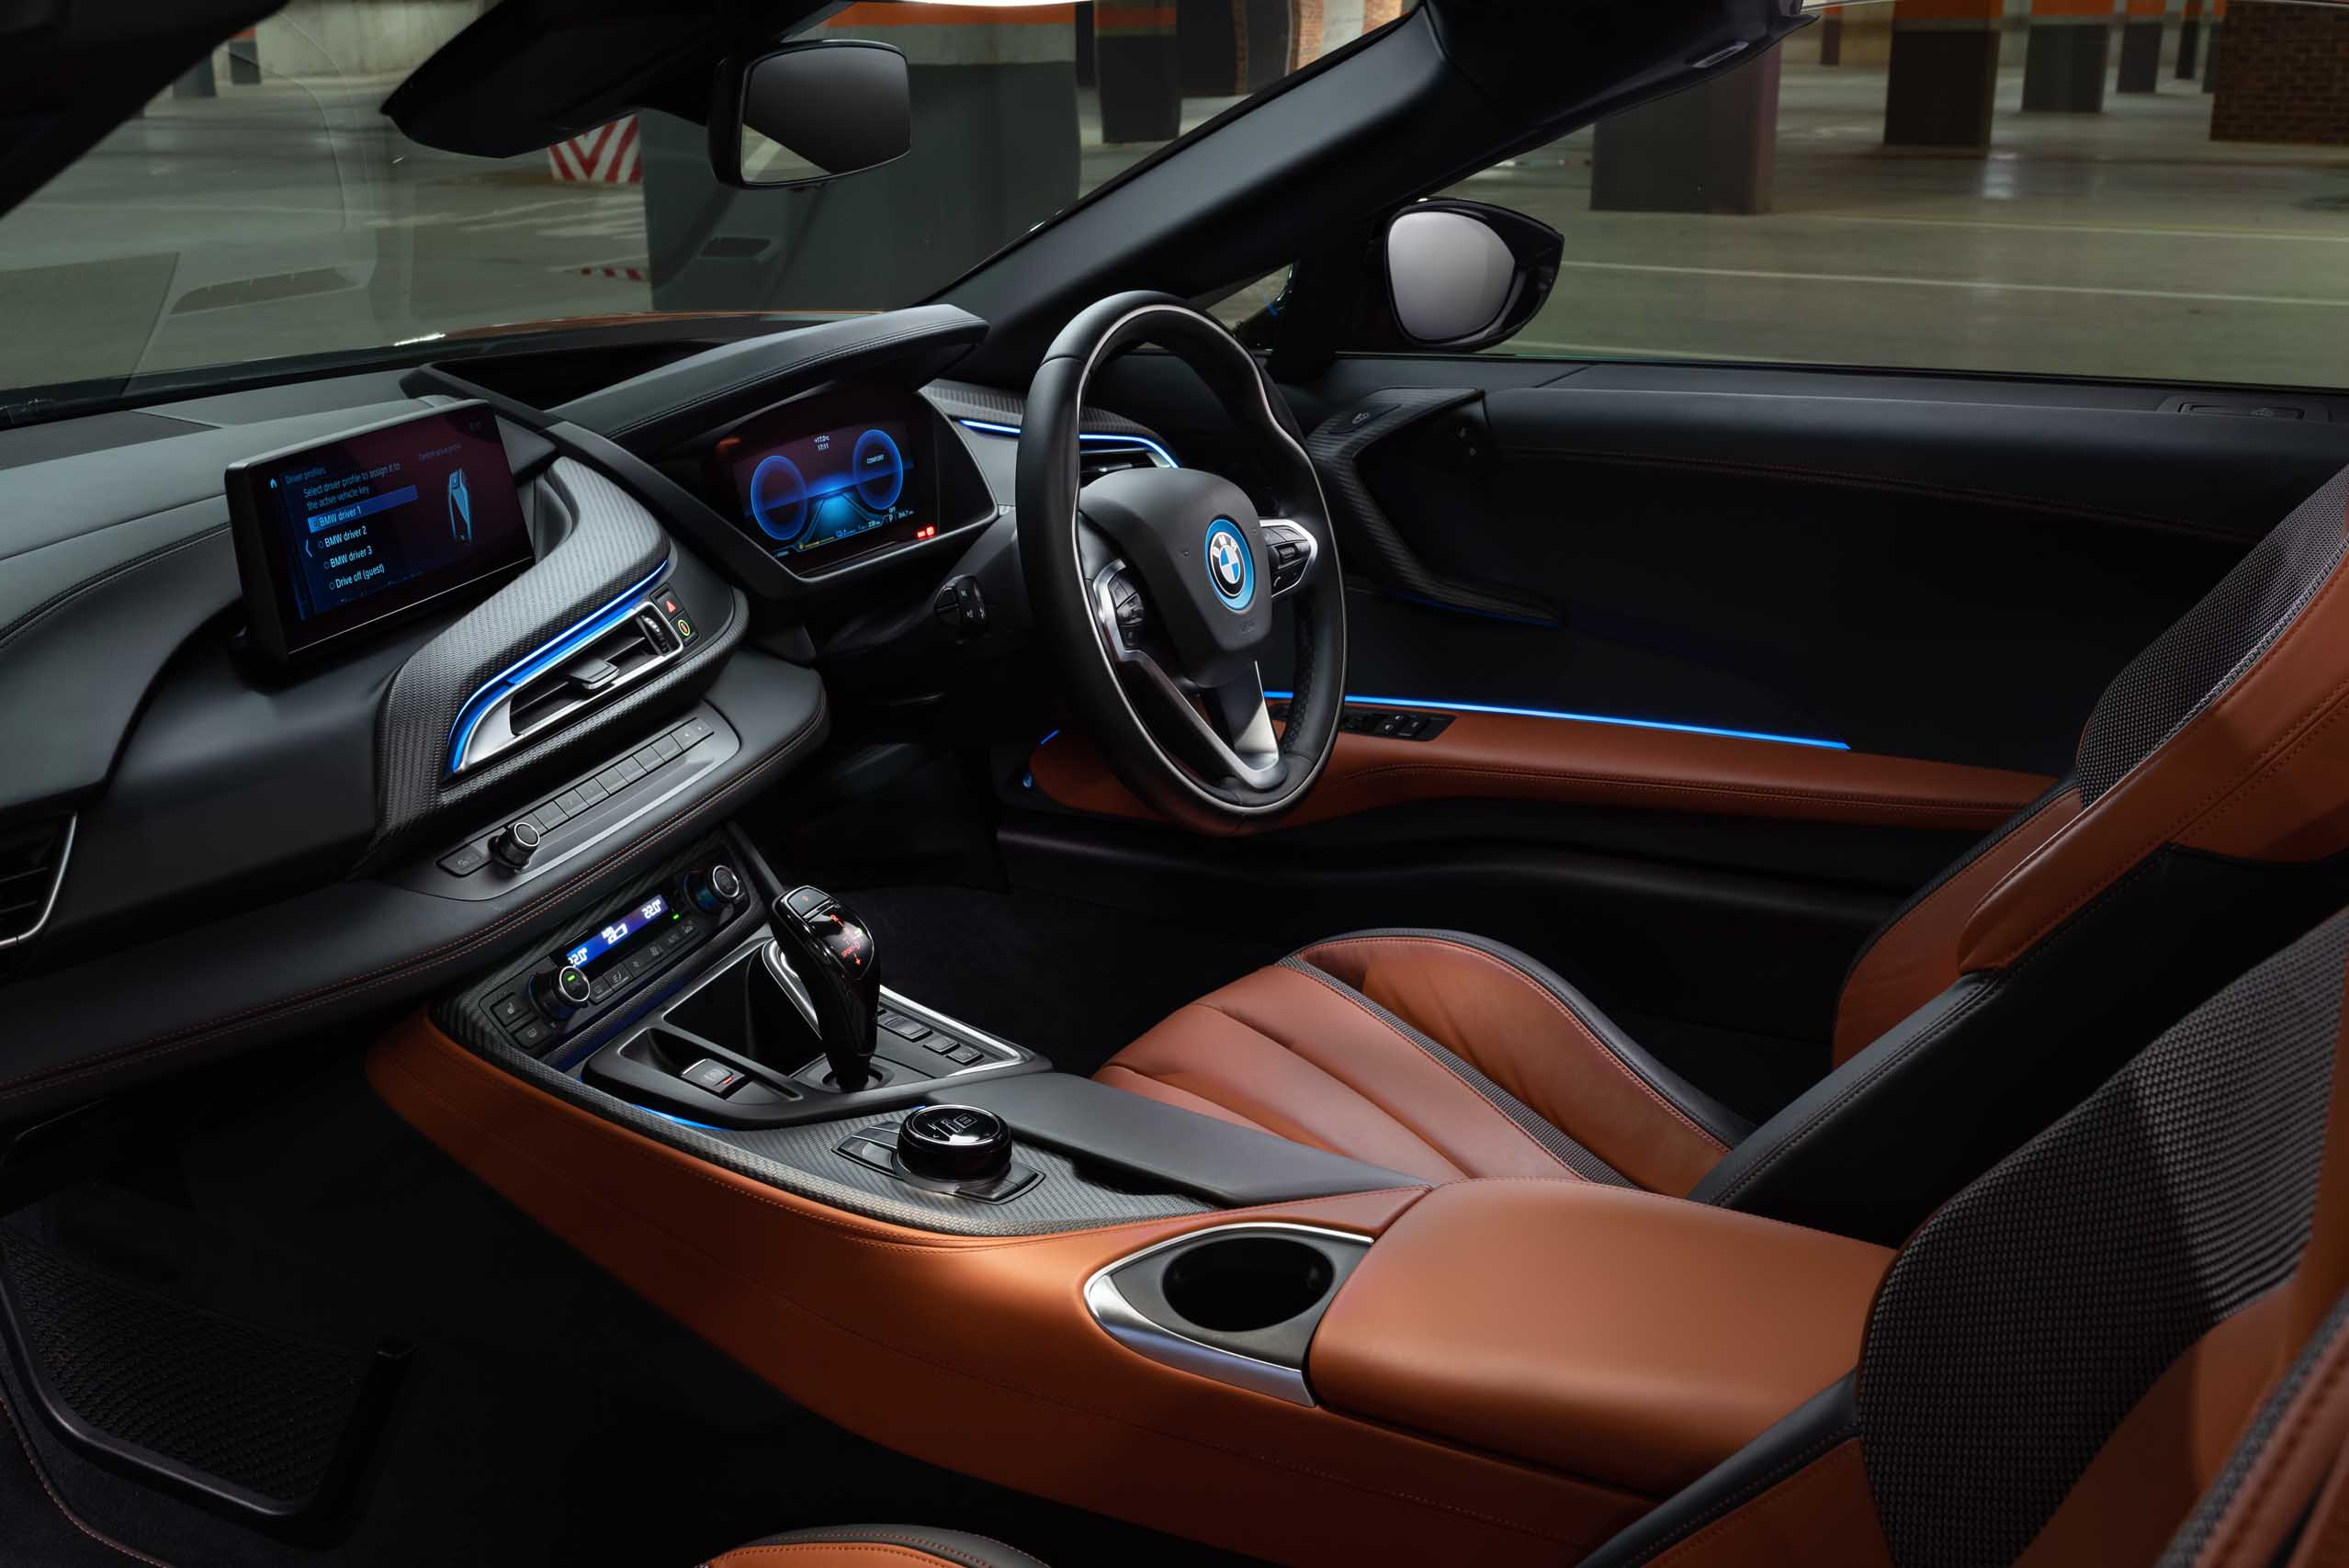 2018 Bmw I8 Roadster Interior View Showing The Seats And Steering